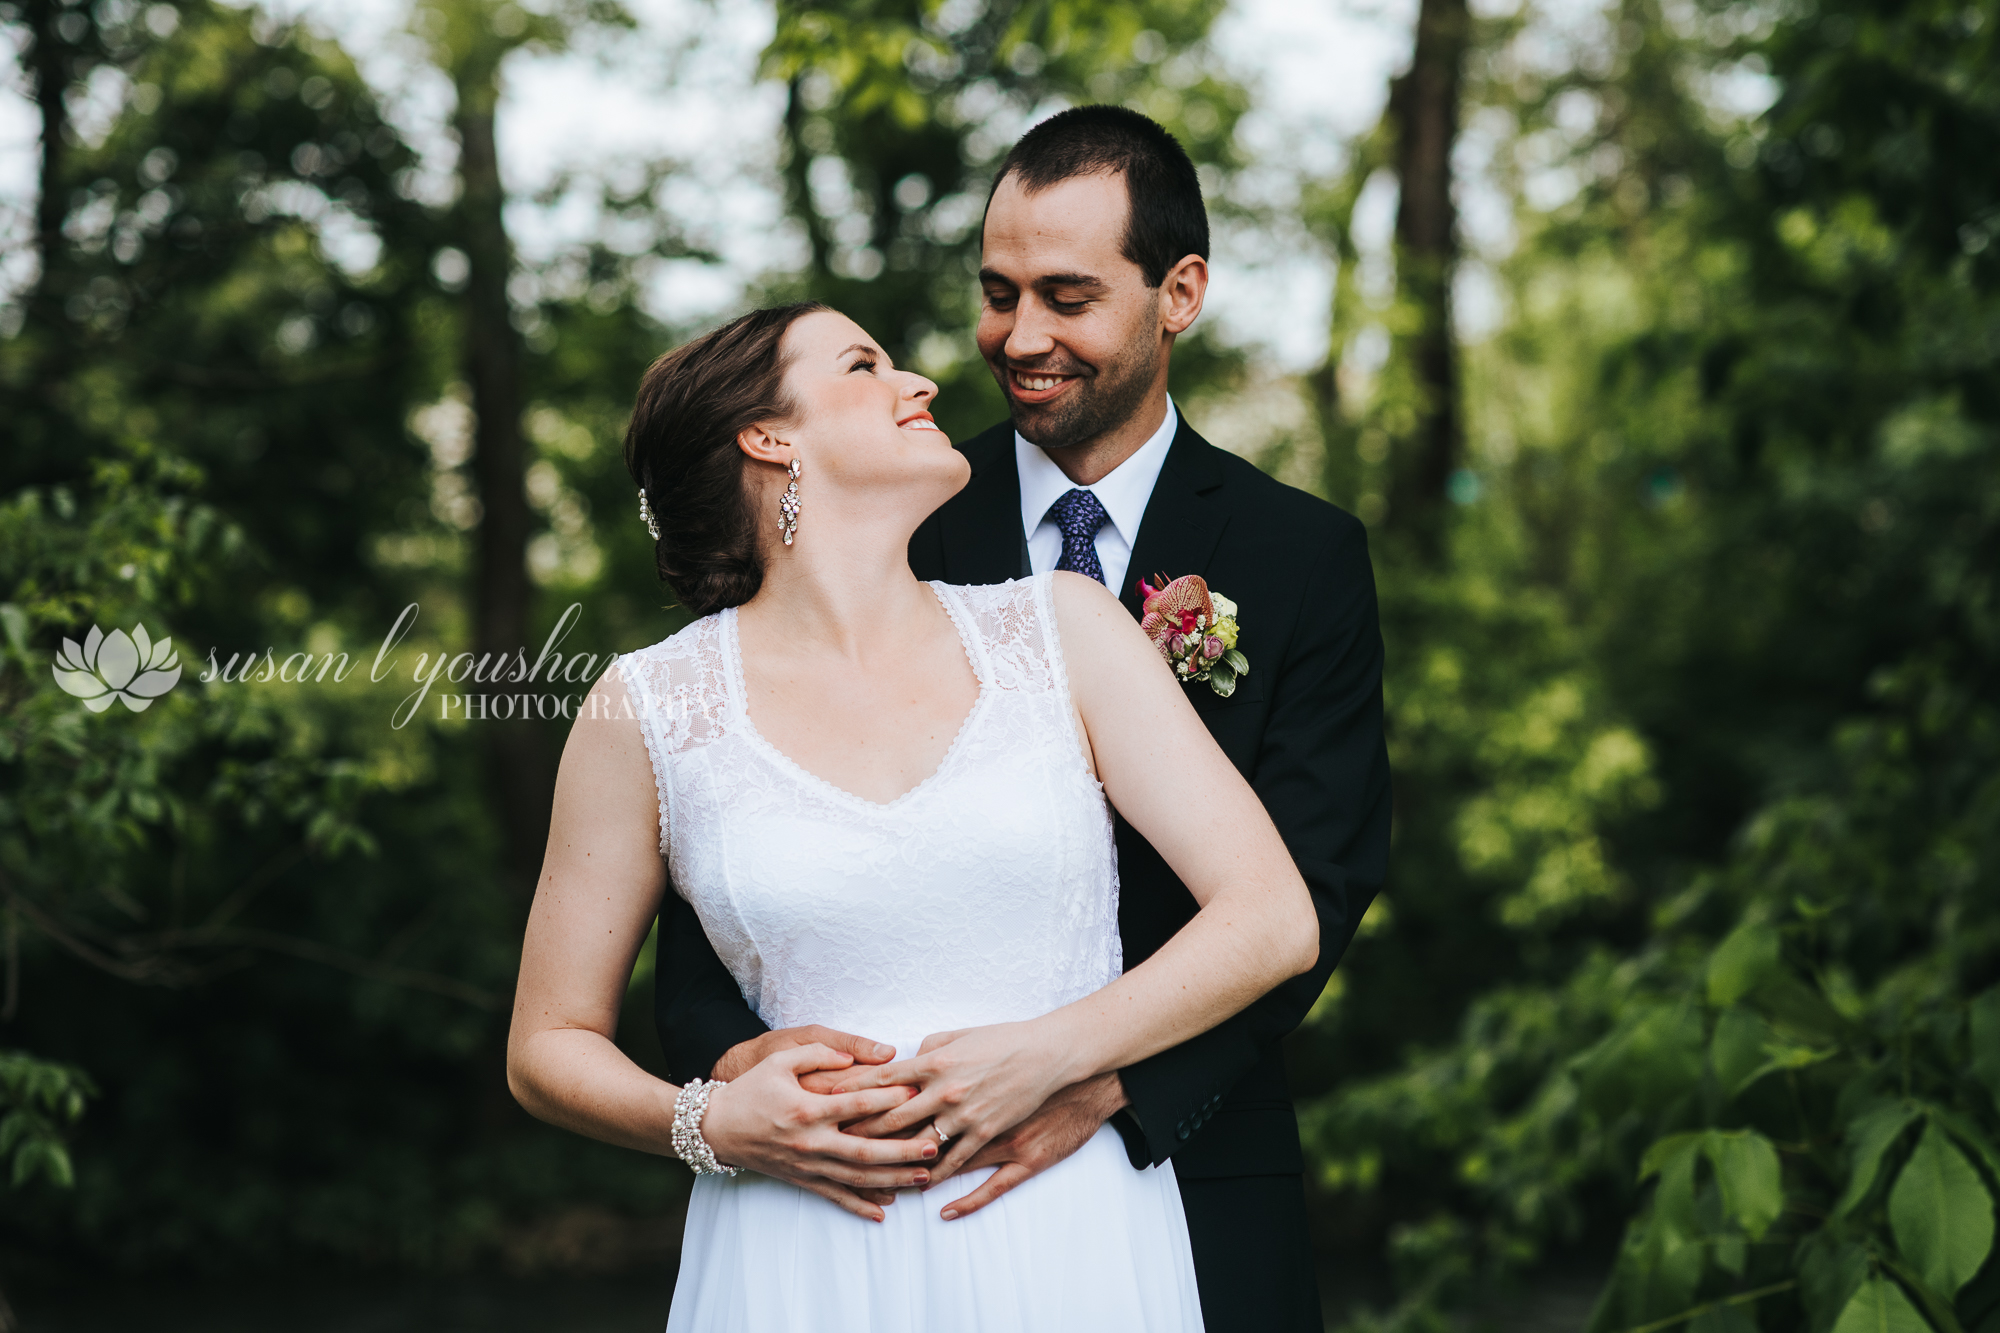 Adena and  Erik Wedding 05-17-2019 SLY Photography-28.jpg